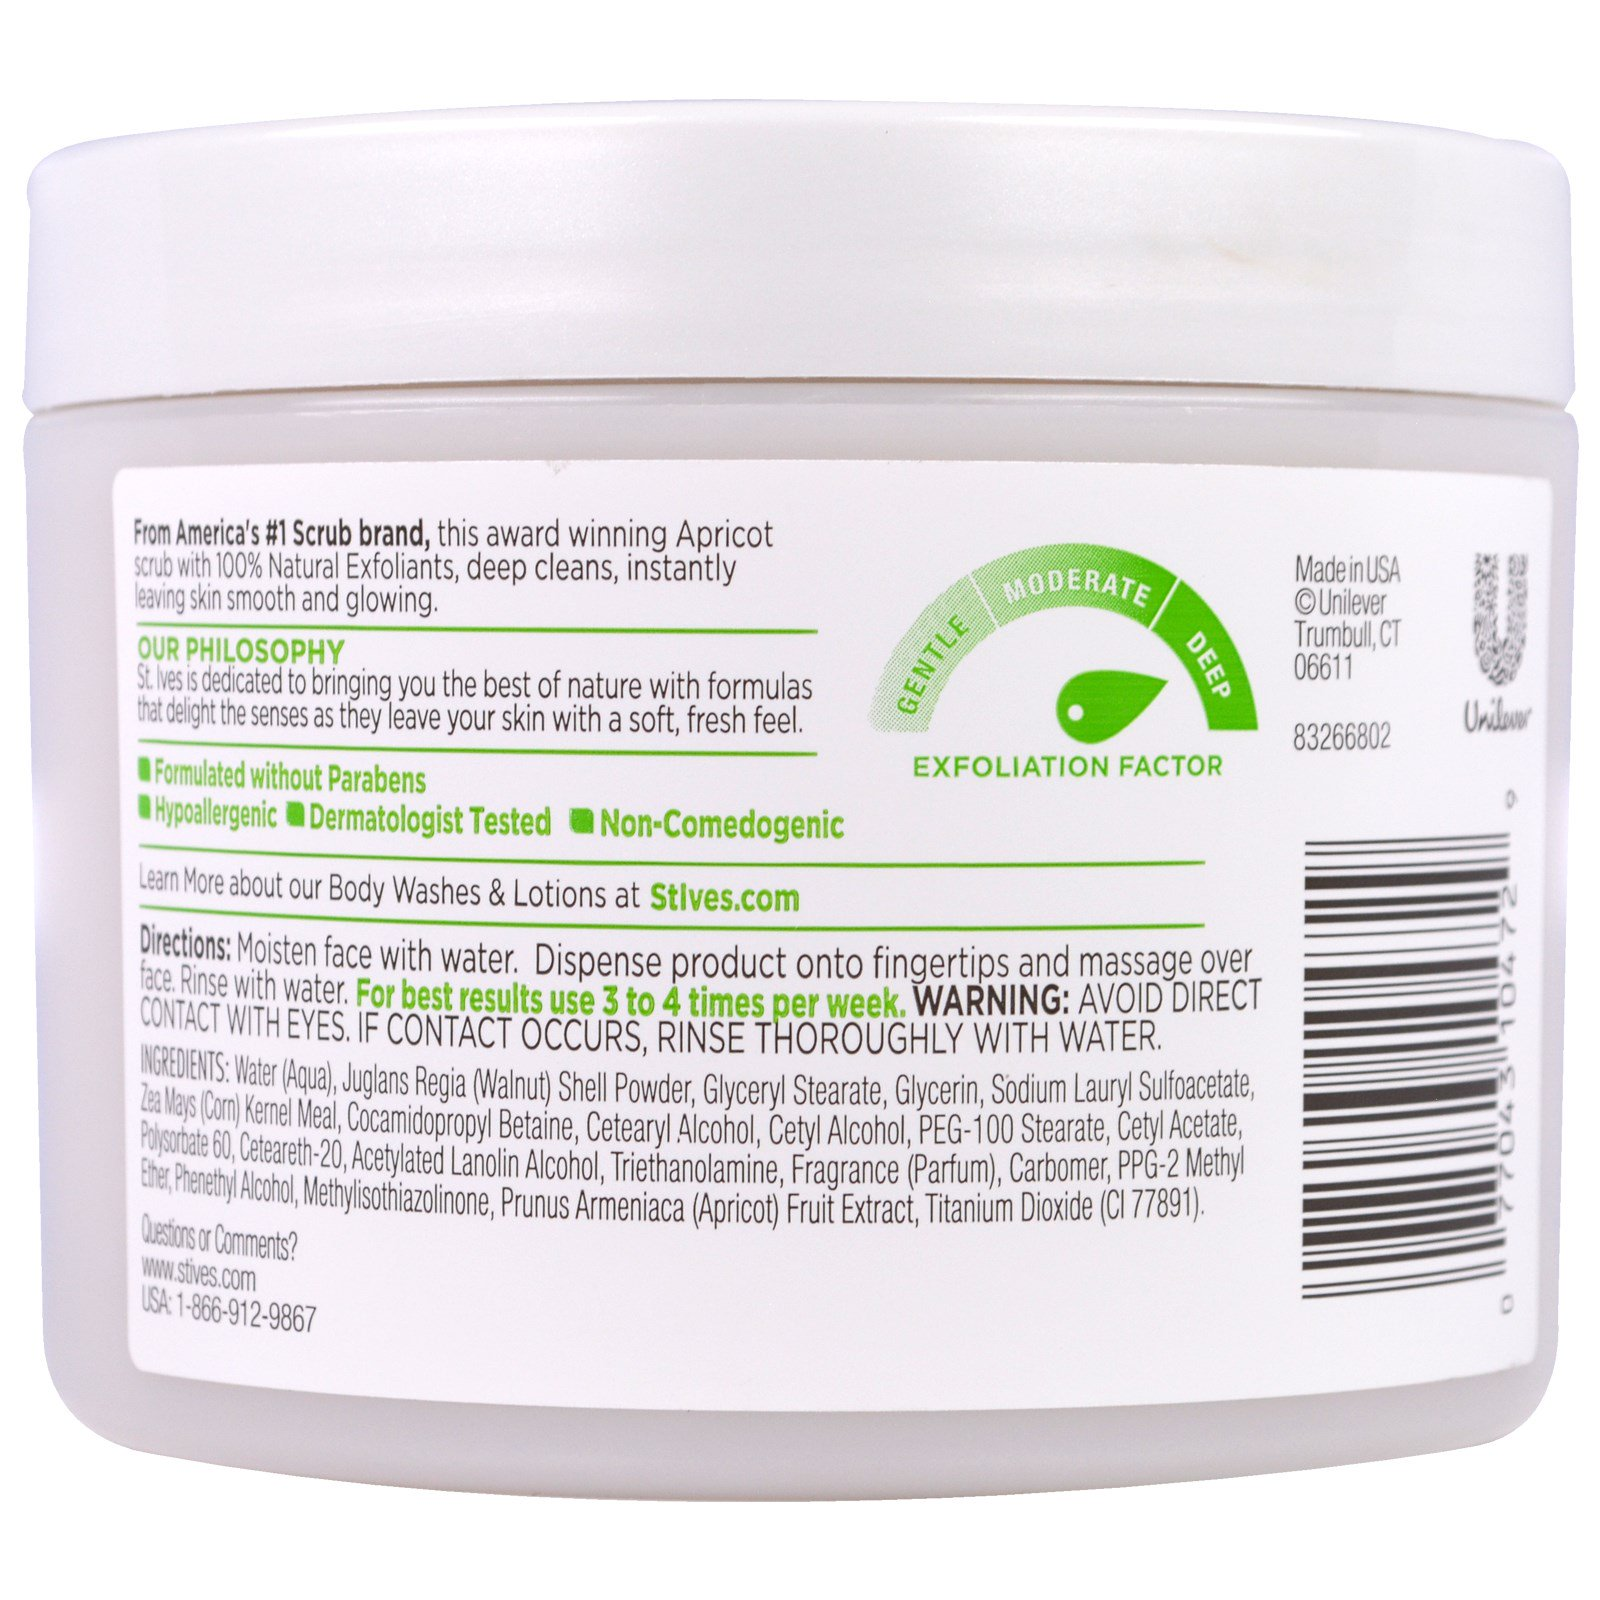 St Ives Fresh Skin Apricot Scrub 10 Oz 283 G Stives Blemish Control By Click To Zoom